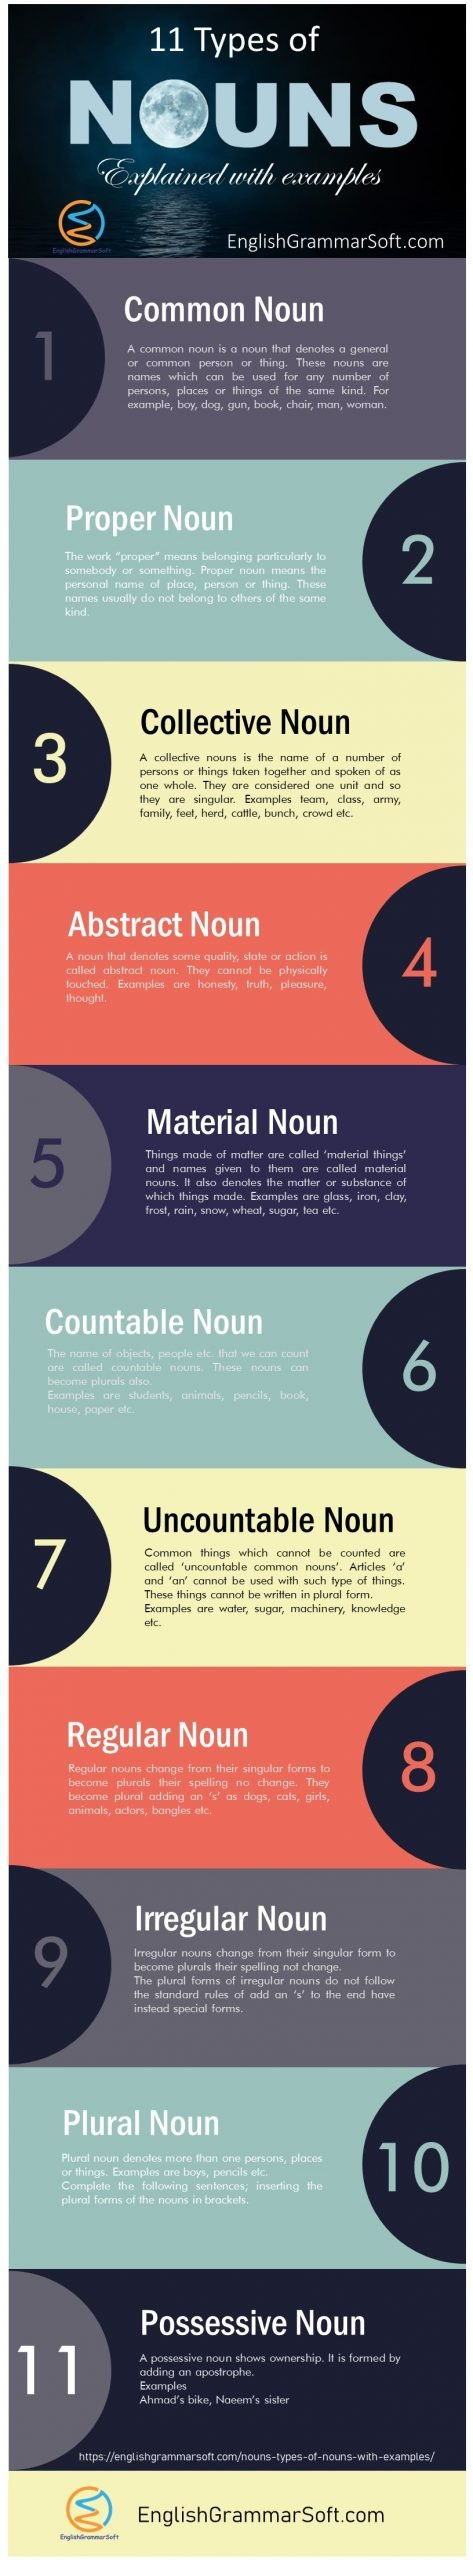 Nouns | 11 types of nouns with examples